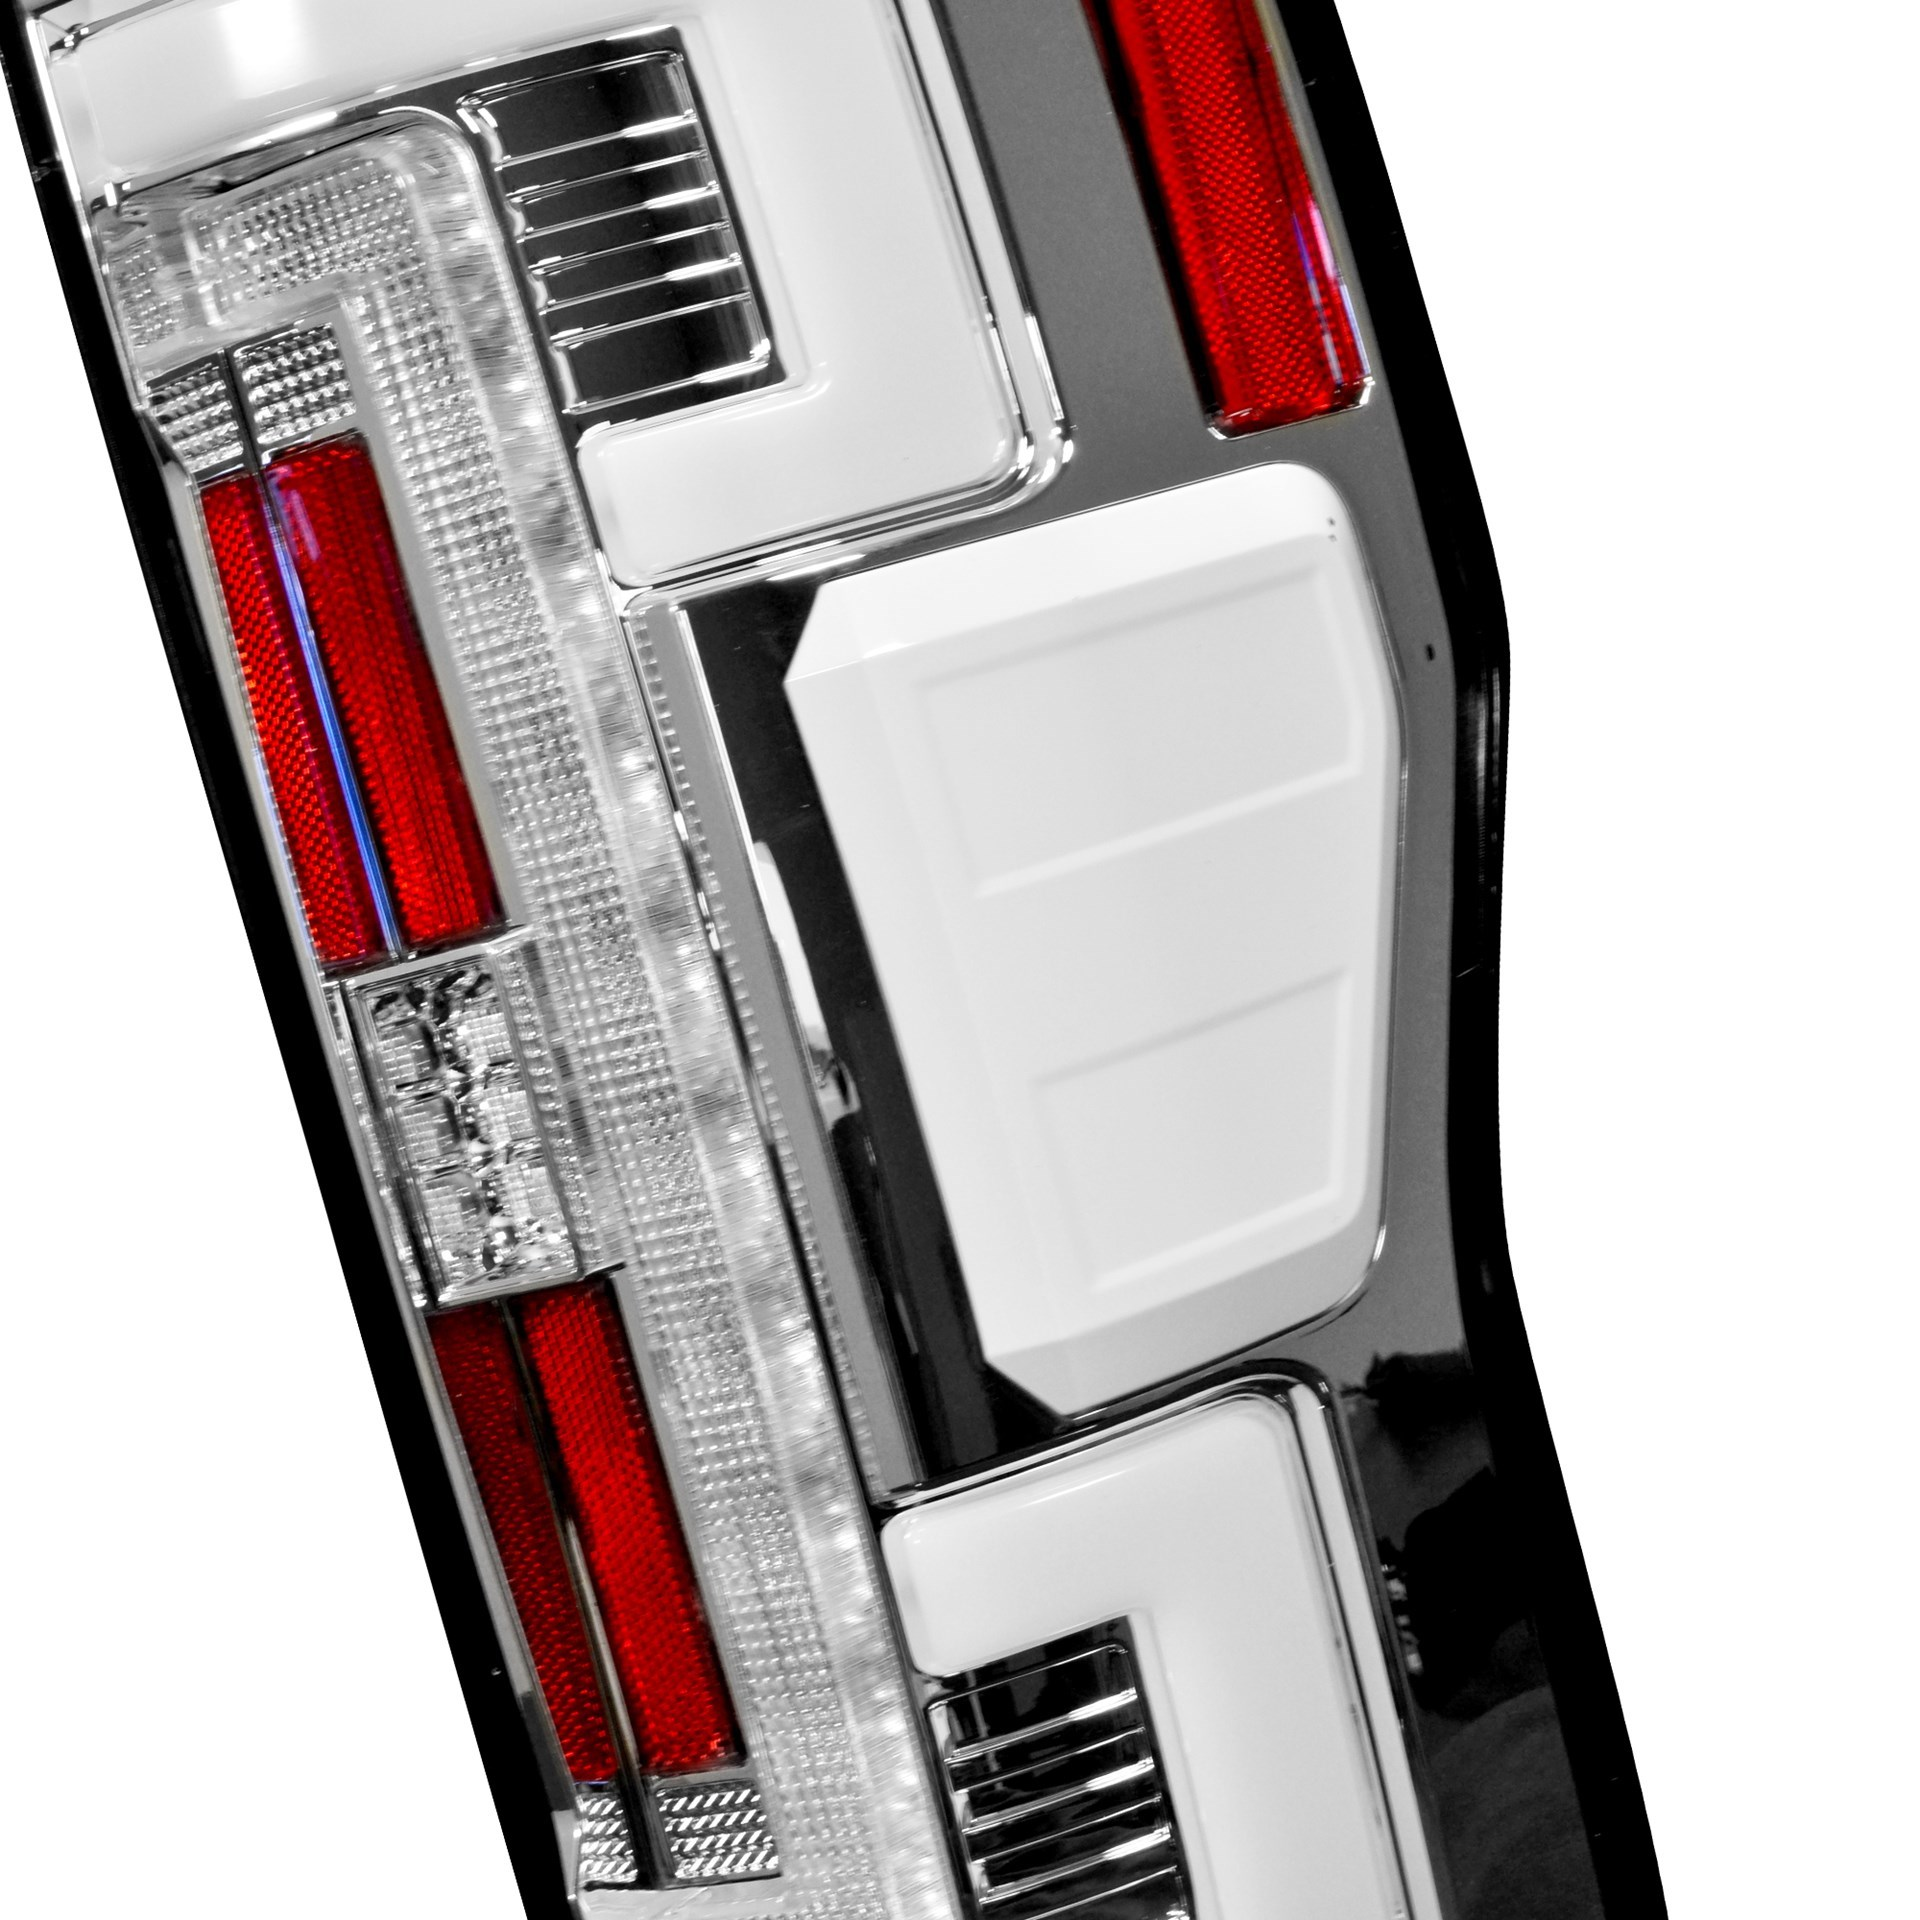 264299LEDCL - Recon OLED Tail Lights with Clear Lenses for 2017-2018 Ford Powerstroke 6.7L trucks